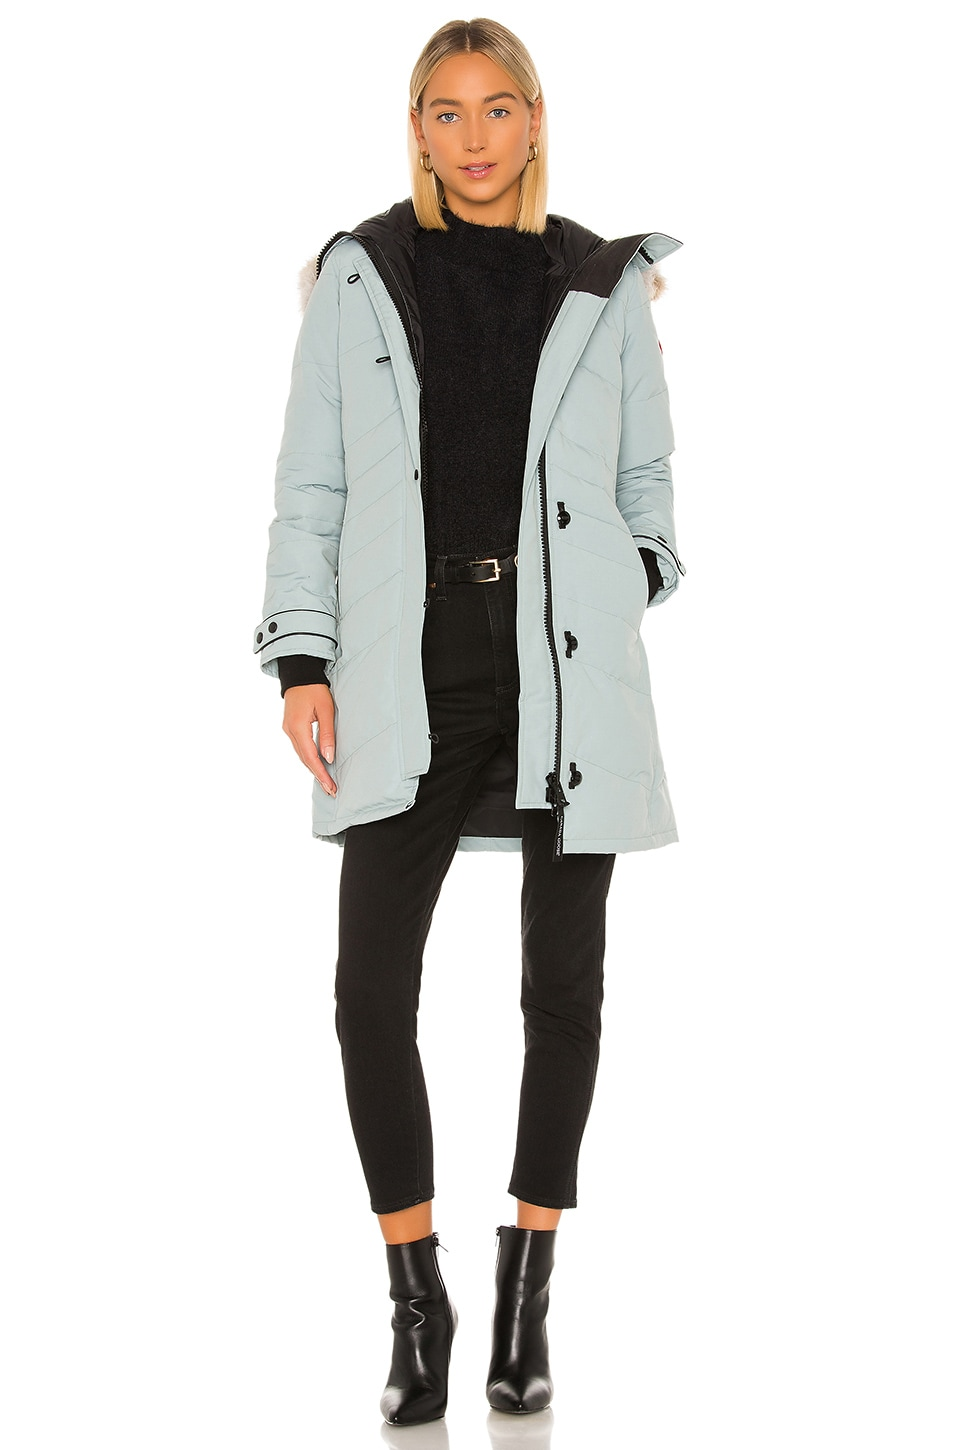 Canada Goose Accessories Lorette Parka with Removable Fur Ruff